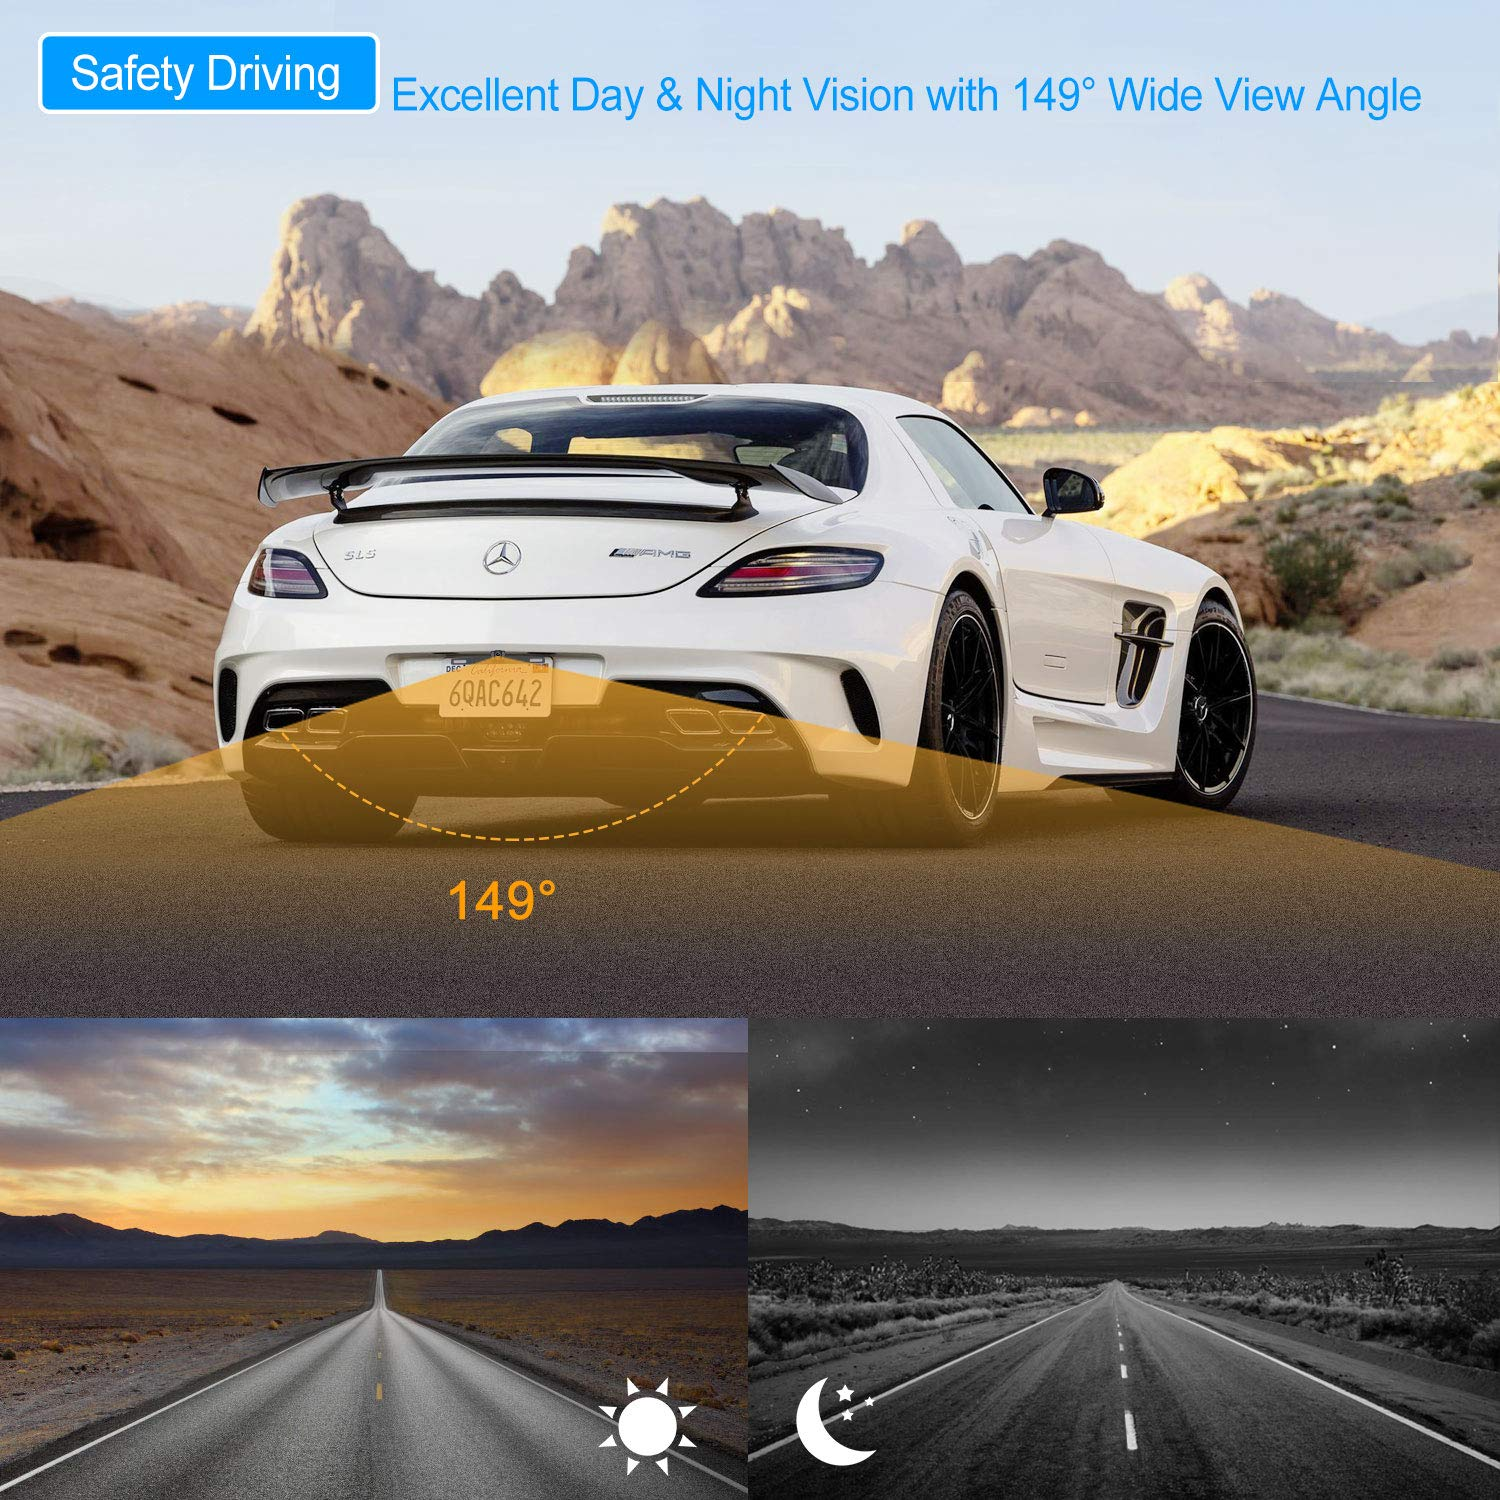 Wireless Backup Camera and Monitor License Plate Mounted HD Digital Signal Reversing Observation Camera Night Vision Waterproof Rear View for 5'' LCD Monitor be Used for Safety Driving by Xroose (Image #4)